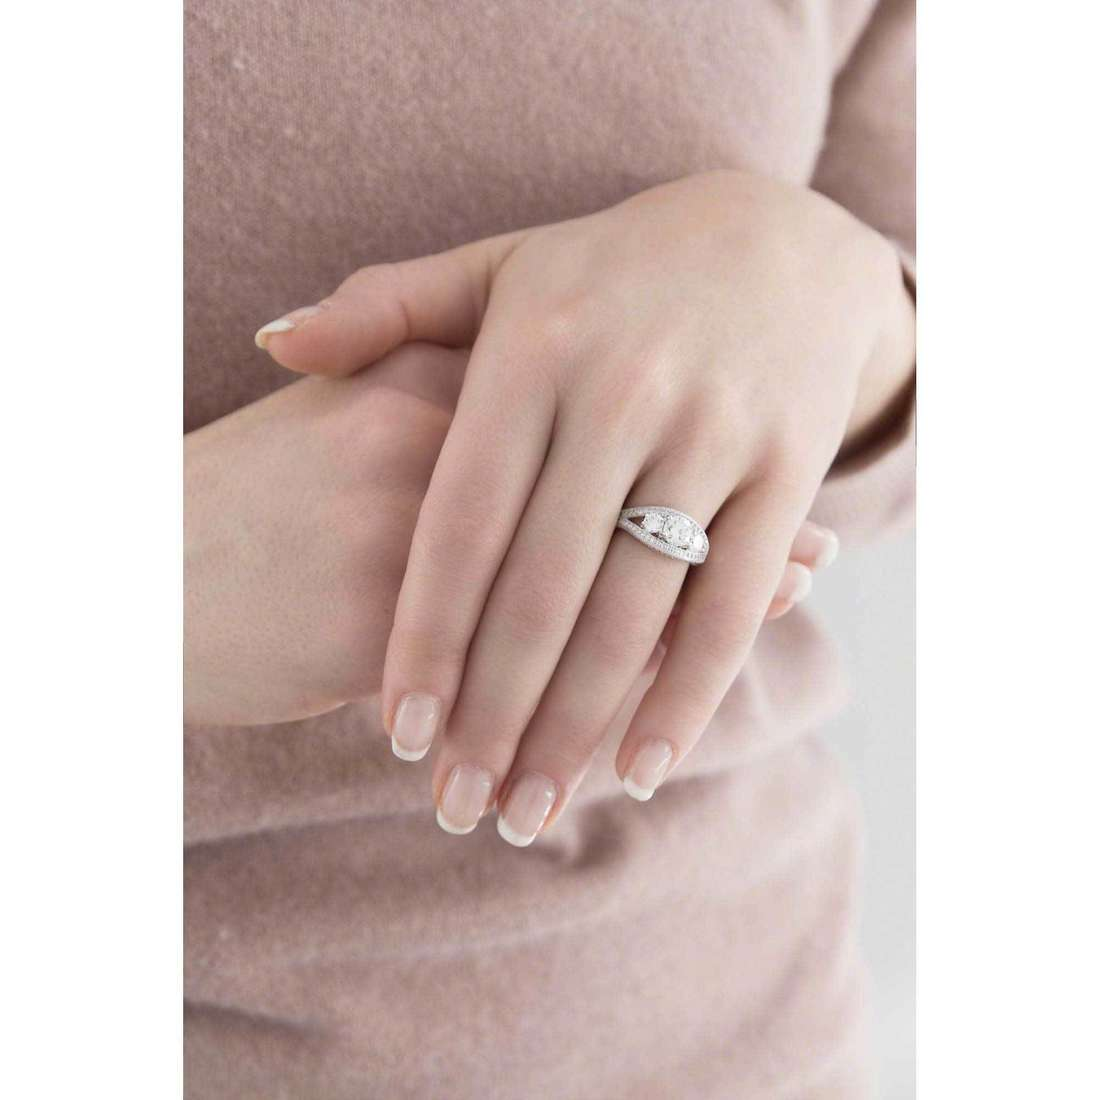 Ambrosia rings woman AAA 020 M indosso